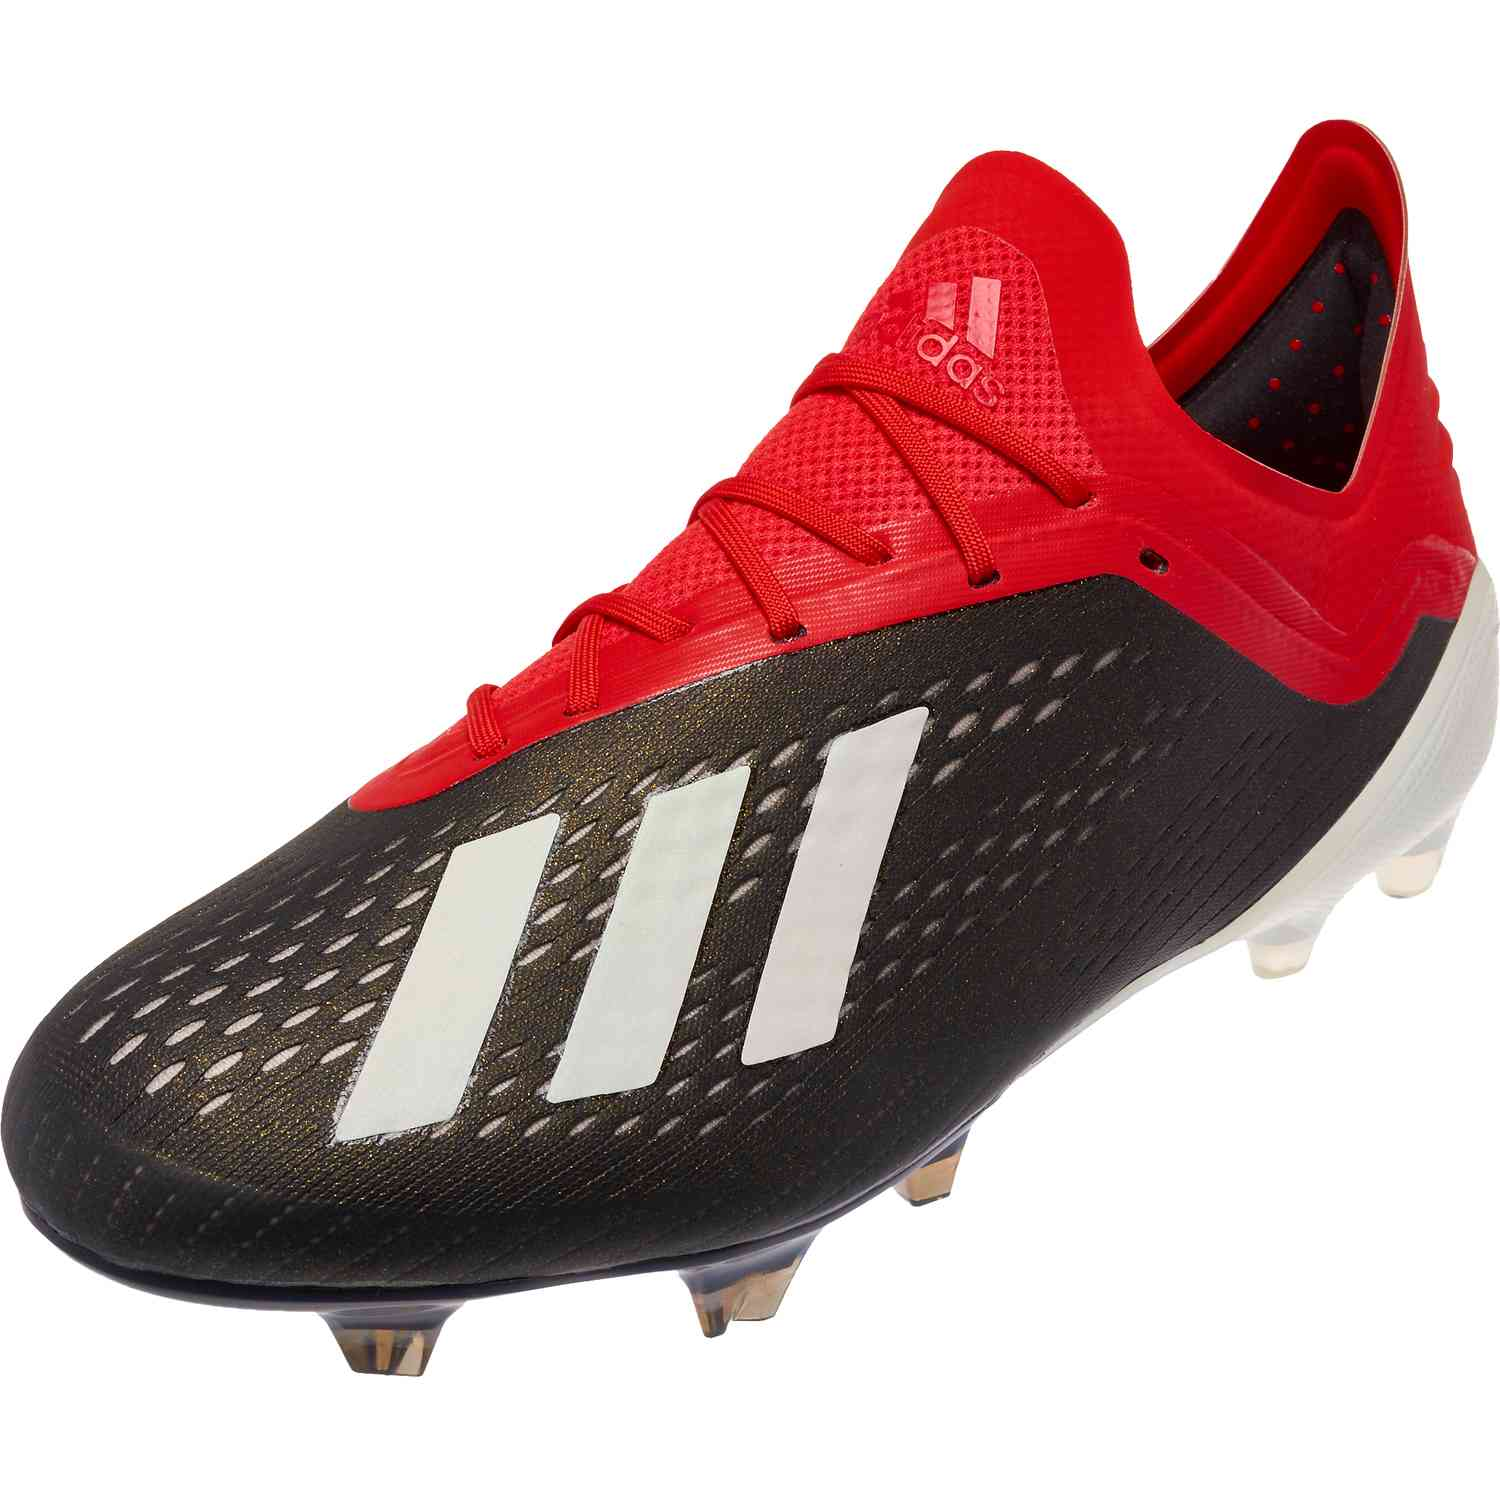 new style d29b4 92681 adidas X 18.1 FG – Initiator Pack